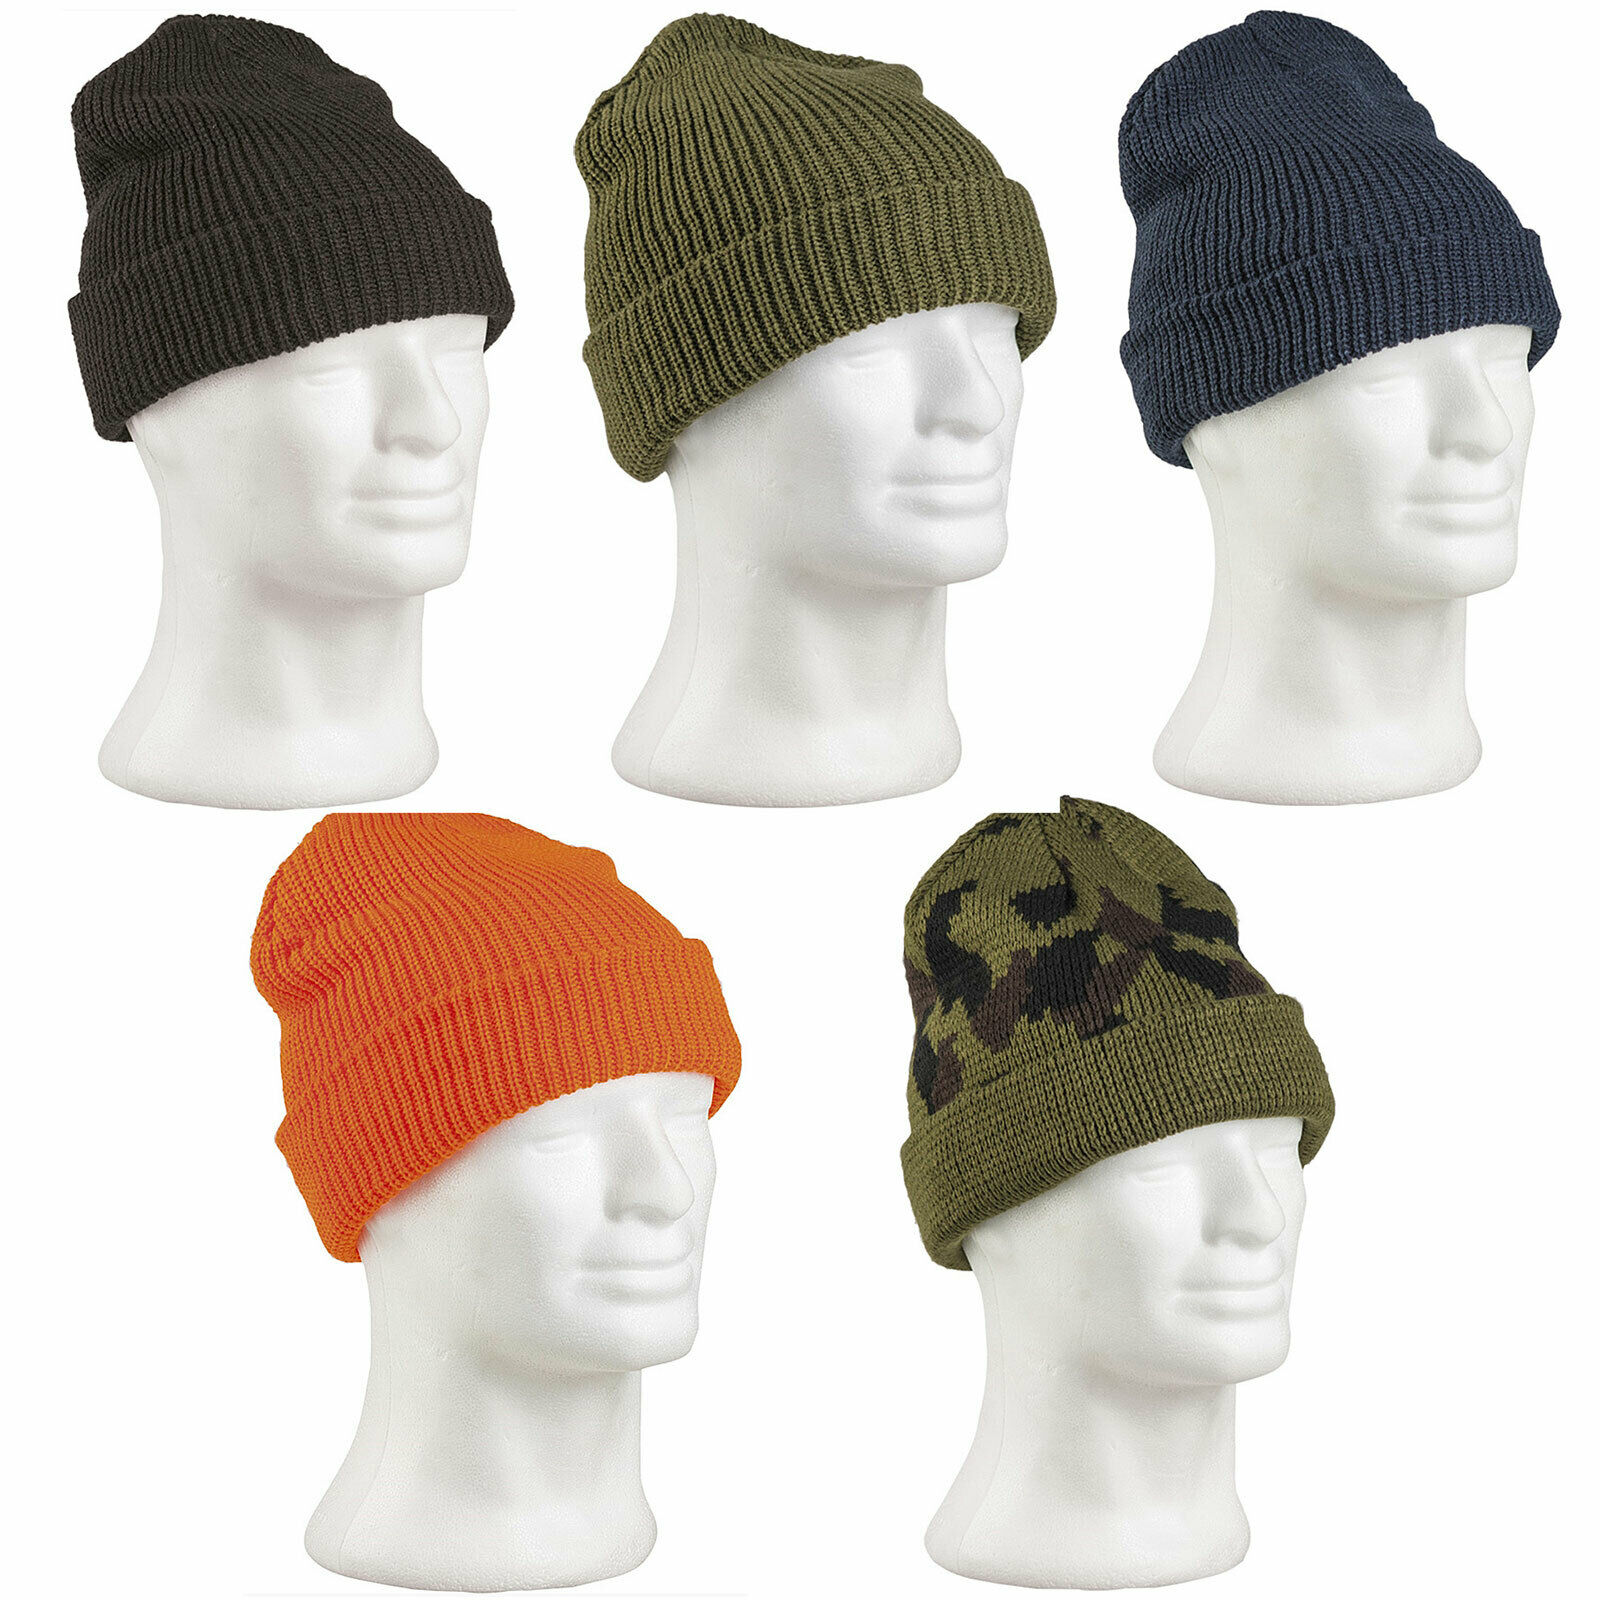 BW Roll Knit Hat Pan Rolling Hat Knitted Cap Winter Hat Bundeswehr hat